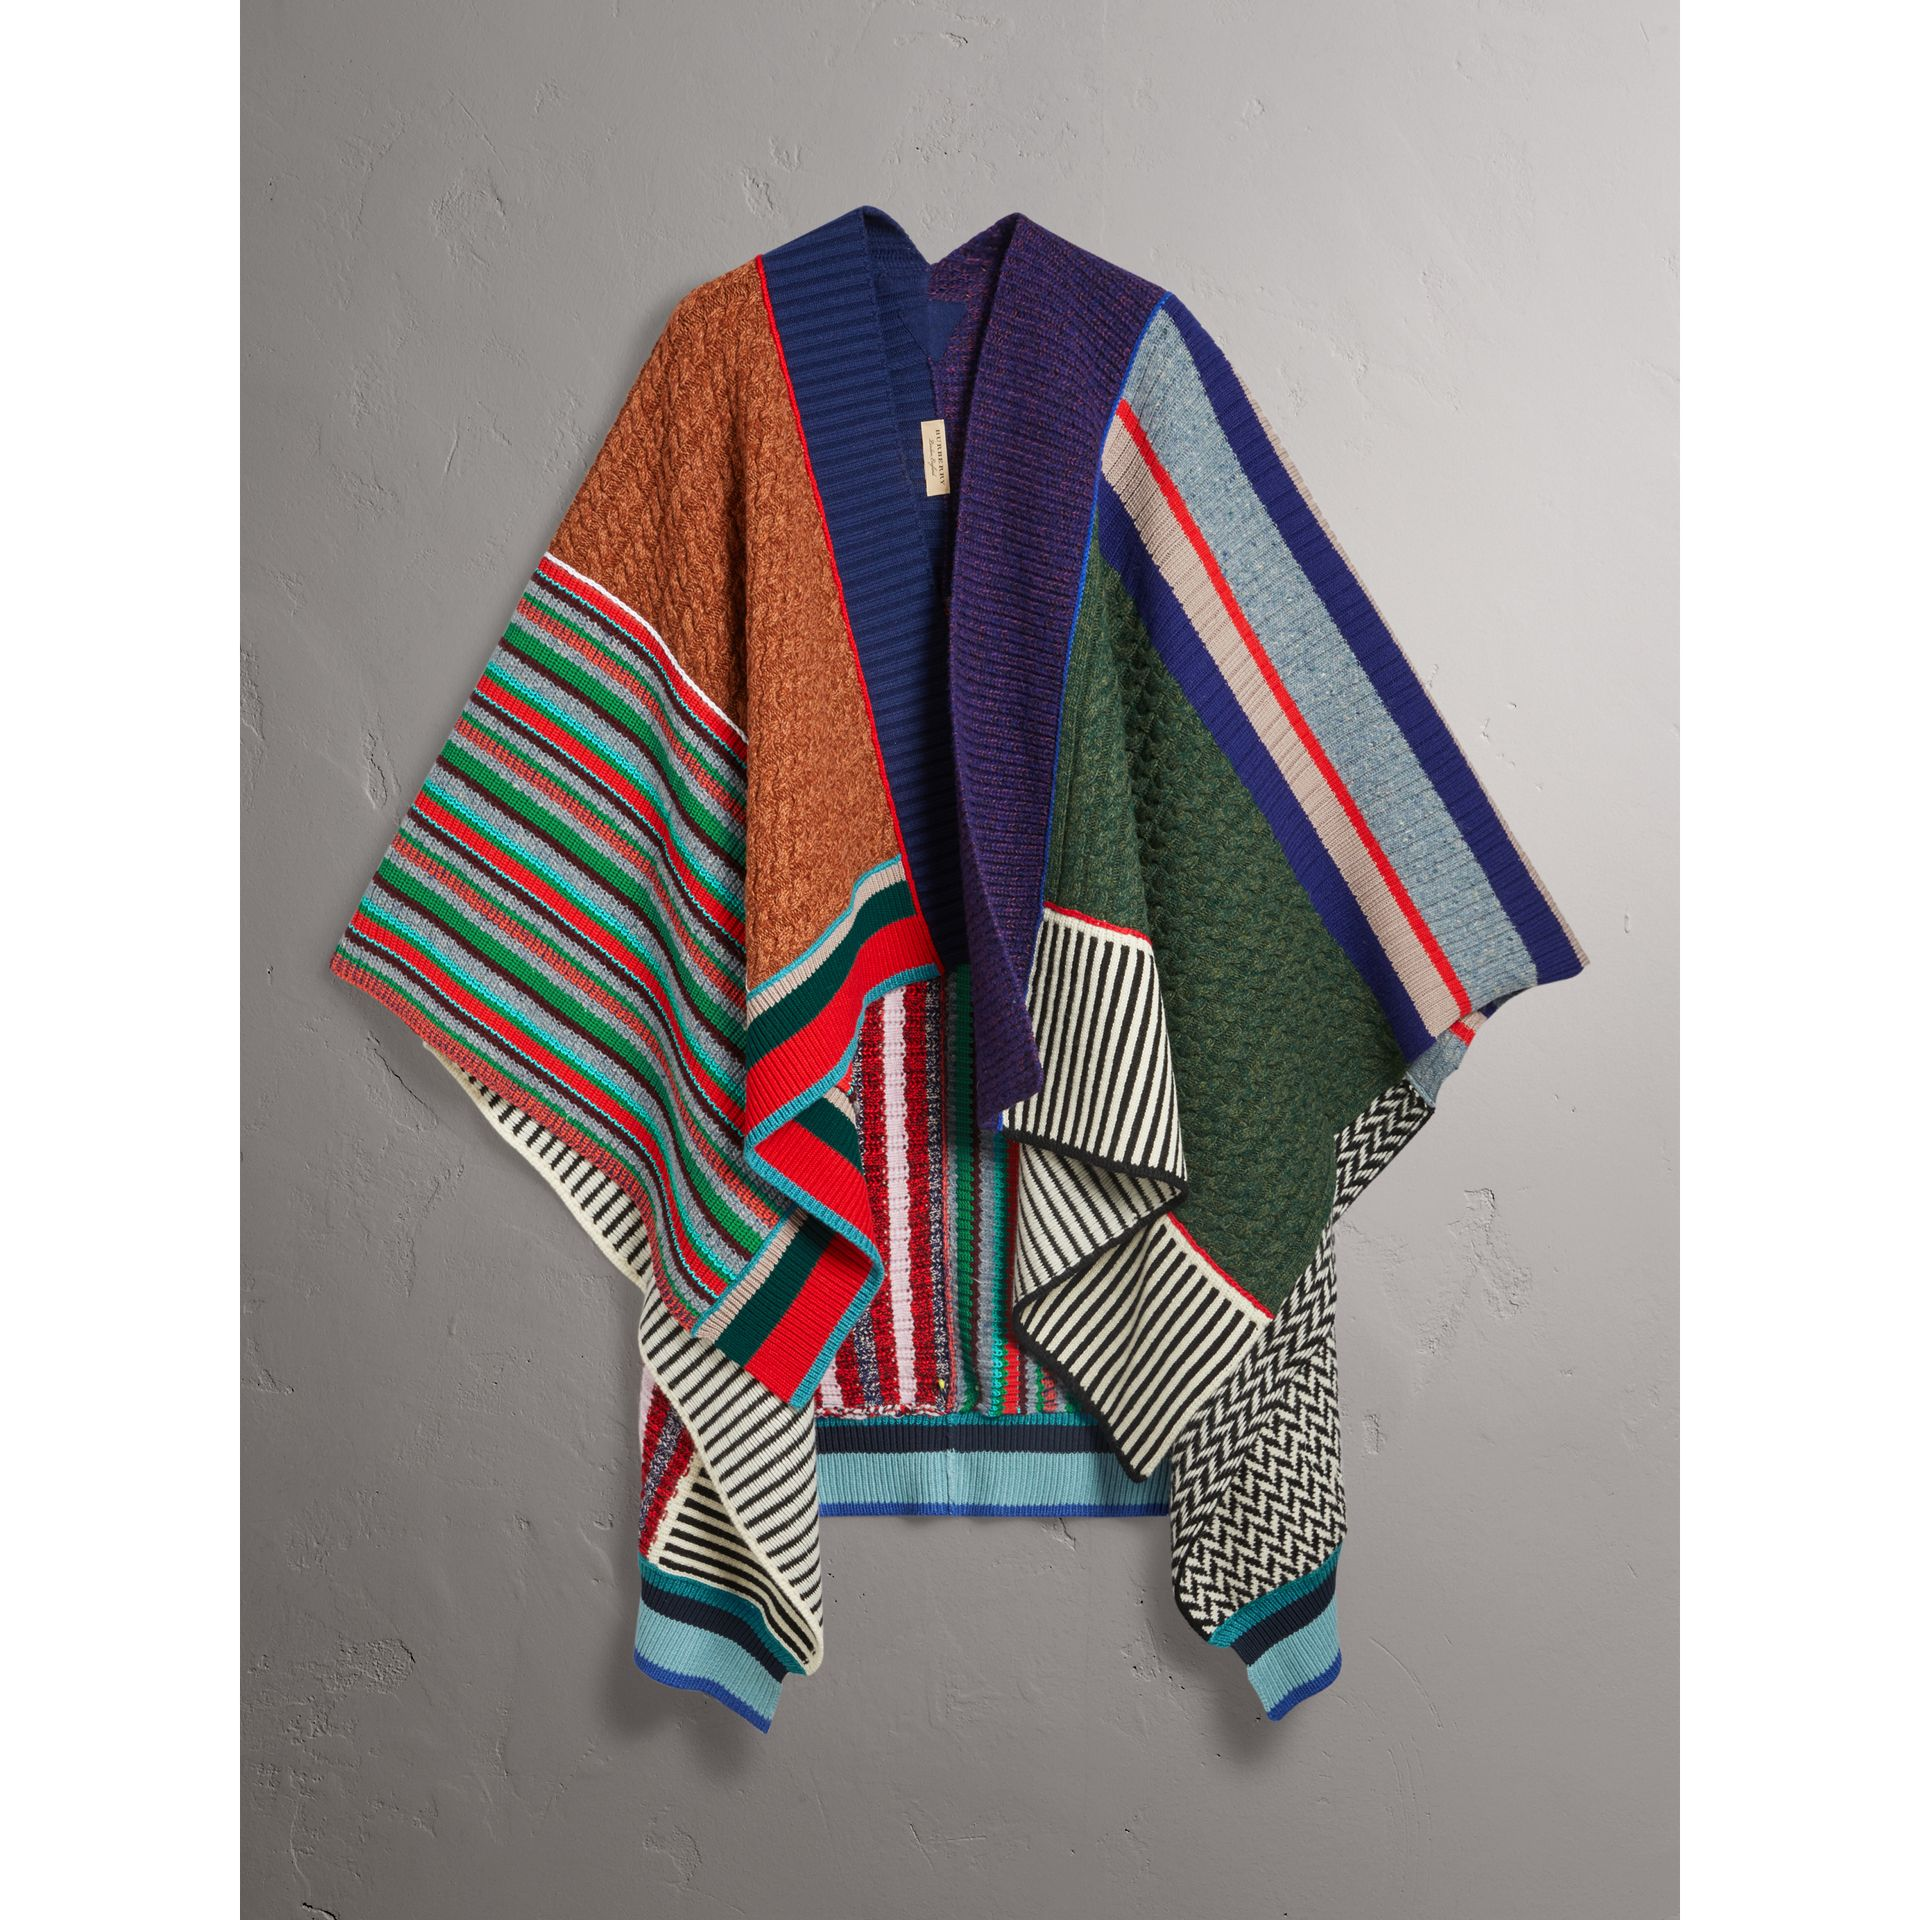 Wool Cashmere Blend Patchwork Poncho in Multicolour - Women | Burberry United Kingdom - gallery image 3